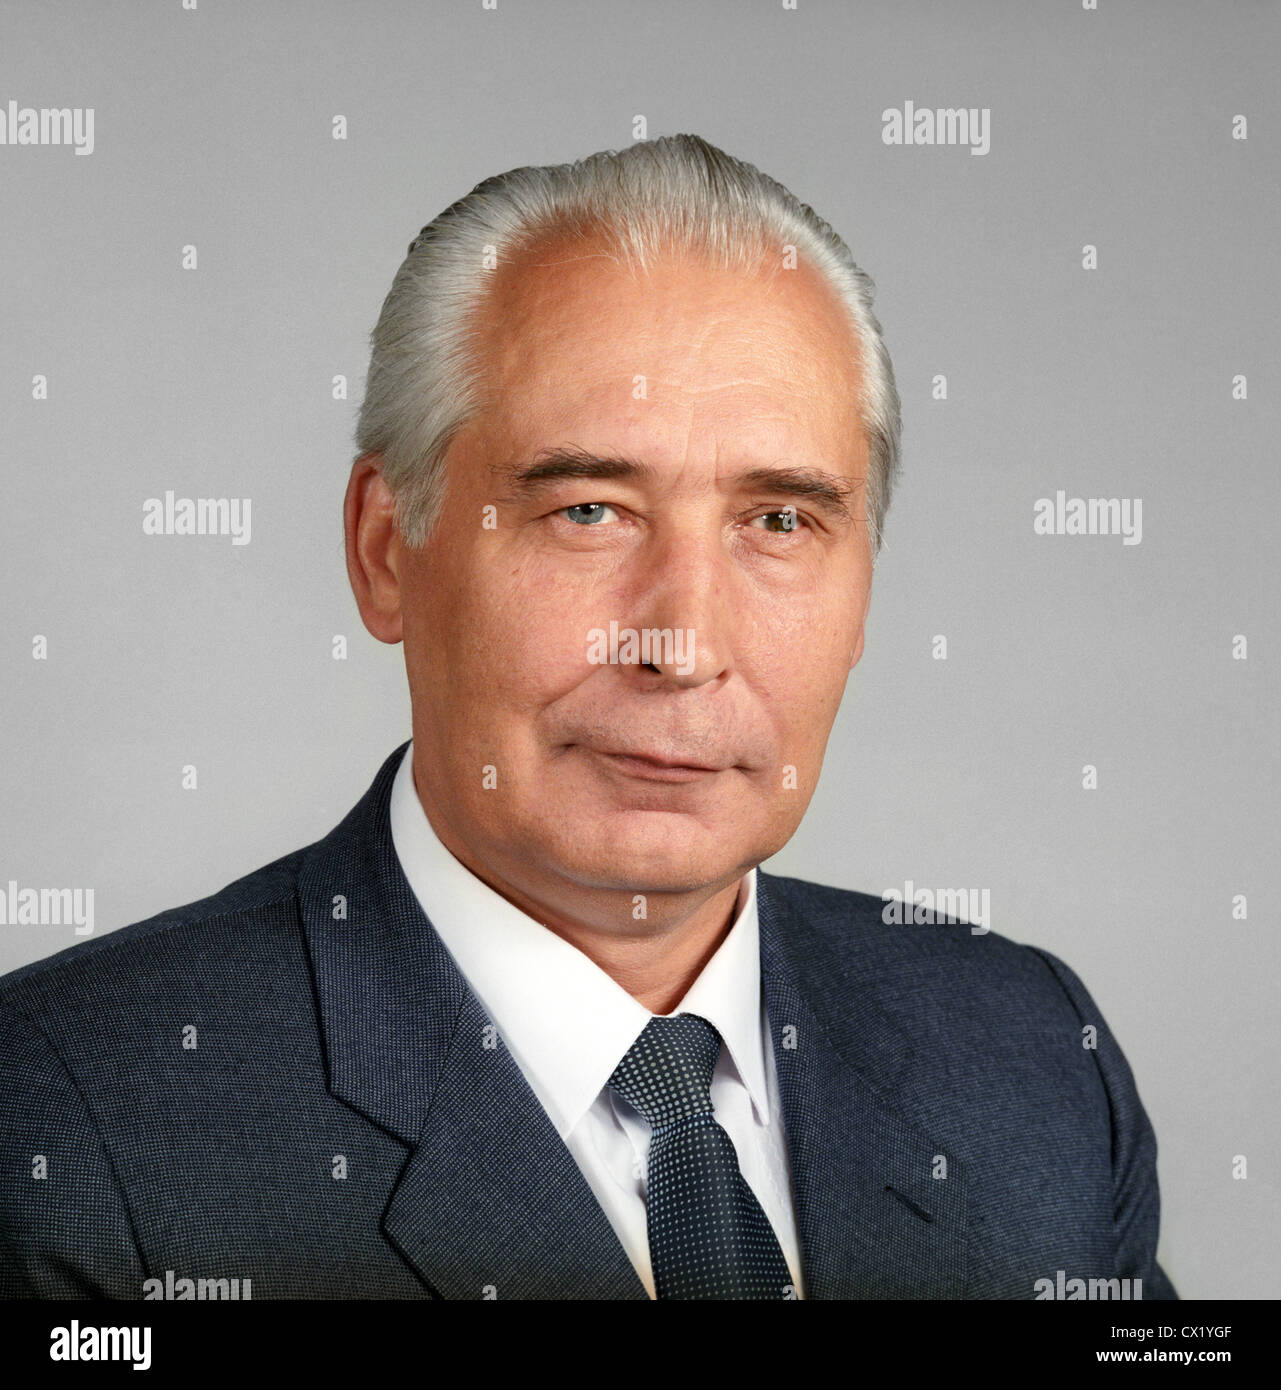 ITAR-TASS: USSR, MOSCOW. Head of Protective Service of the KGB, lieutenant general Yuri Plekhanov. (Photo ITAR-TASS - Stock Image